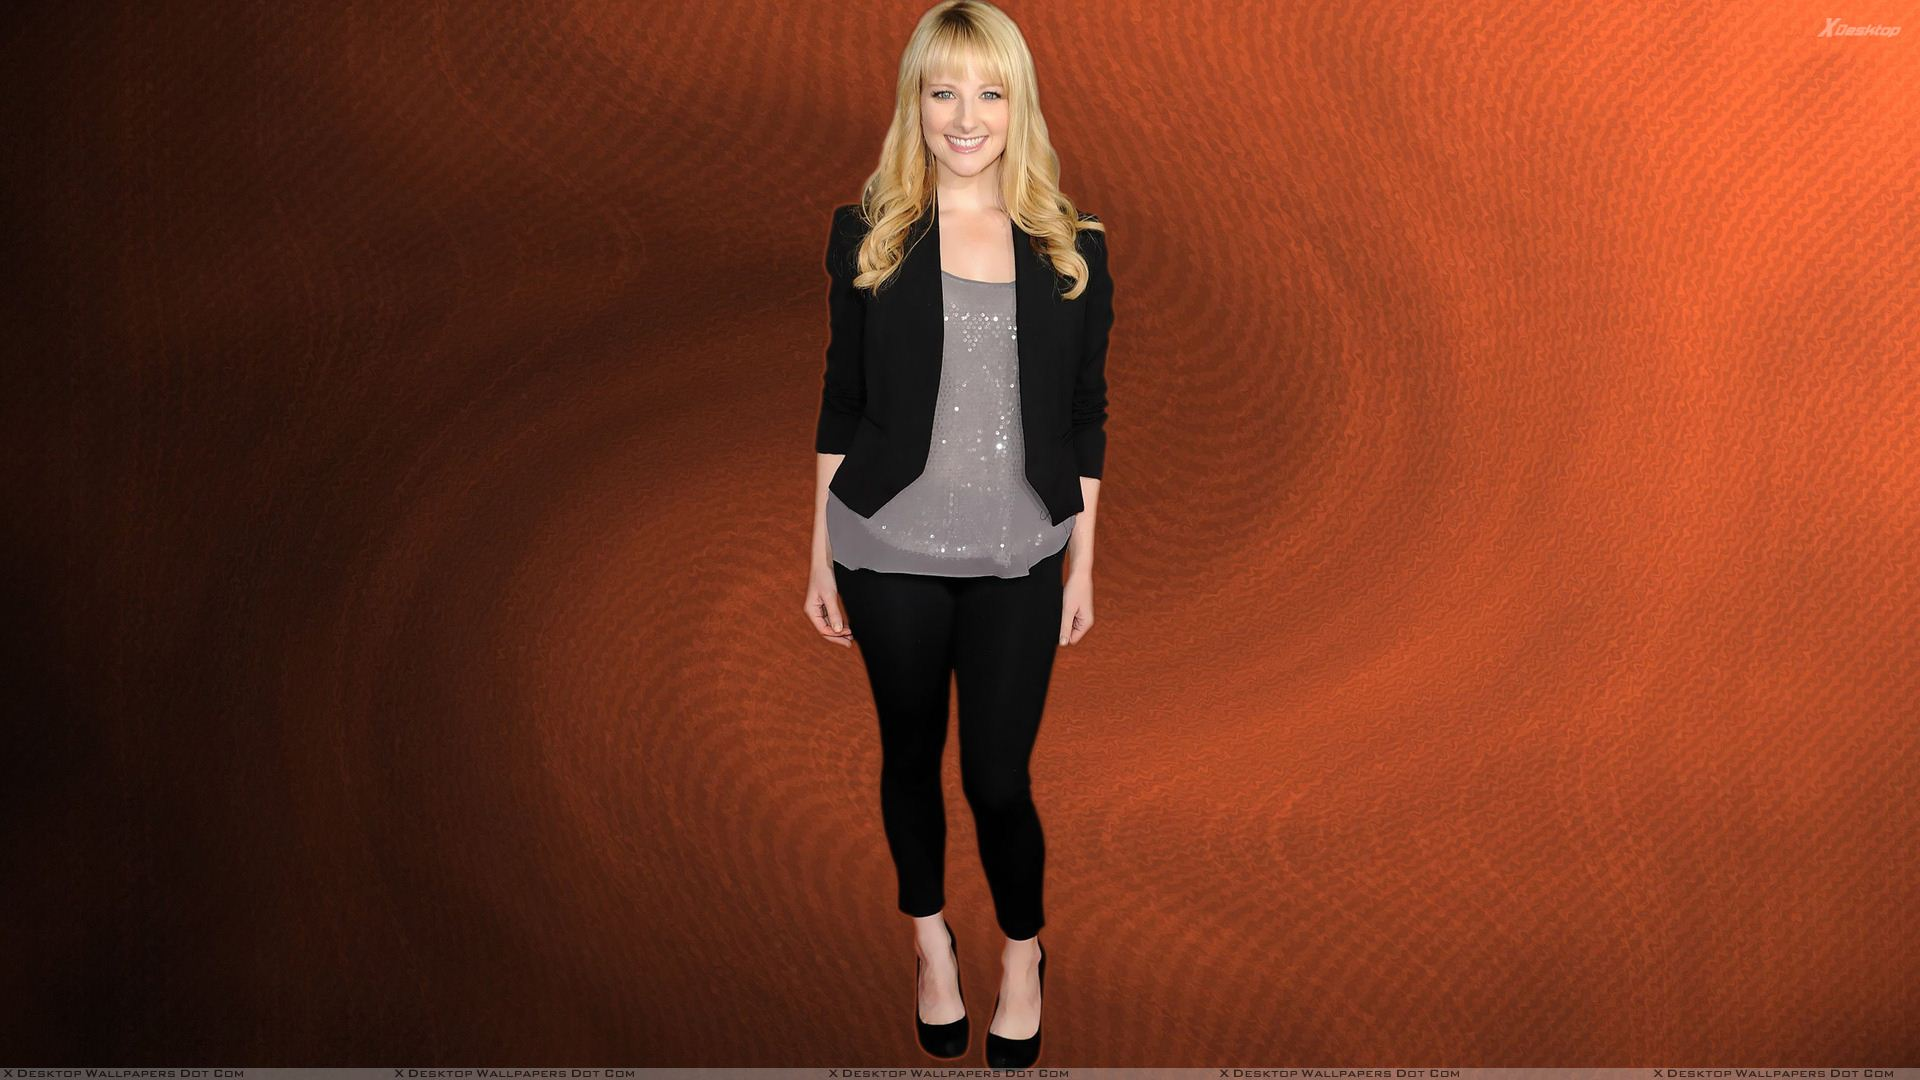 Melissa Rauch Wallpapers Photos Images In Hd